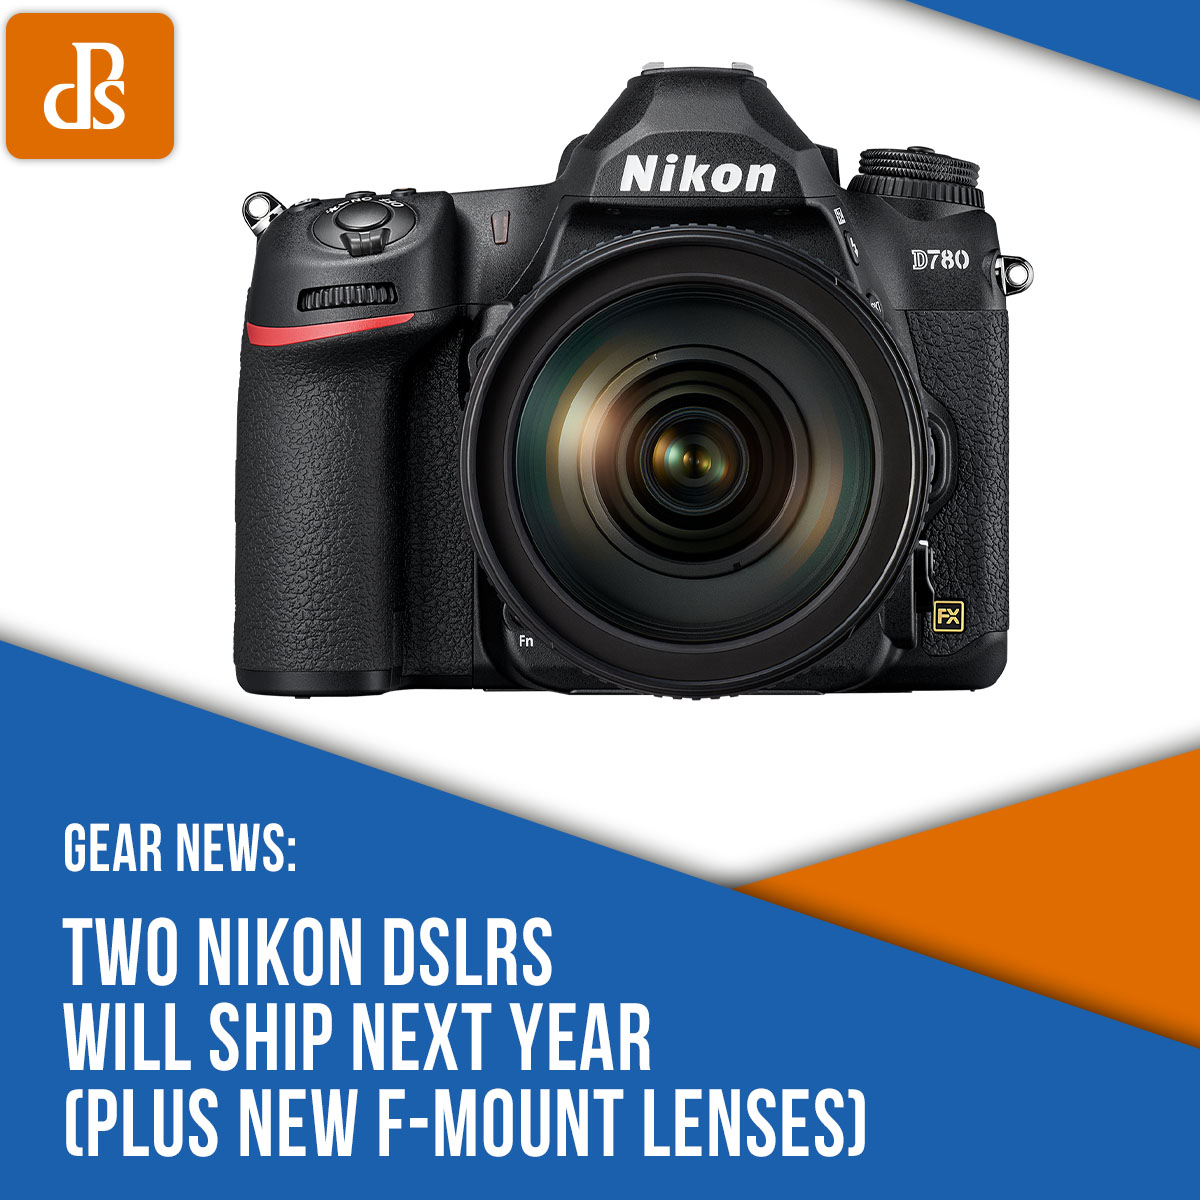 Nikon DSLRs next year